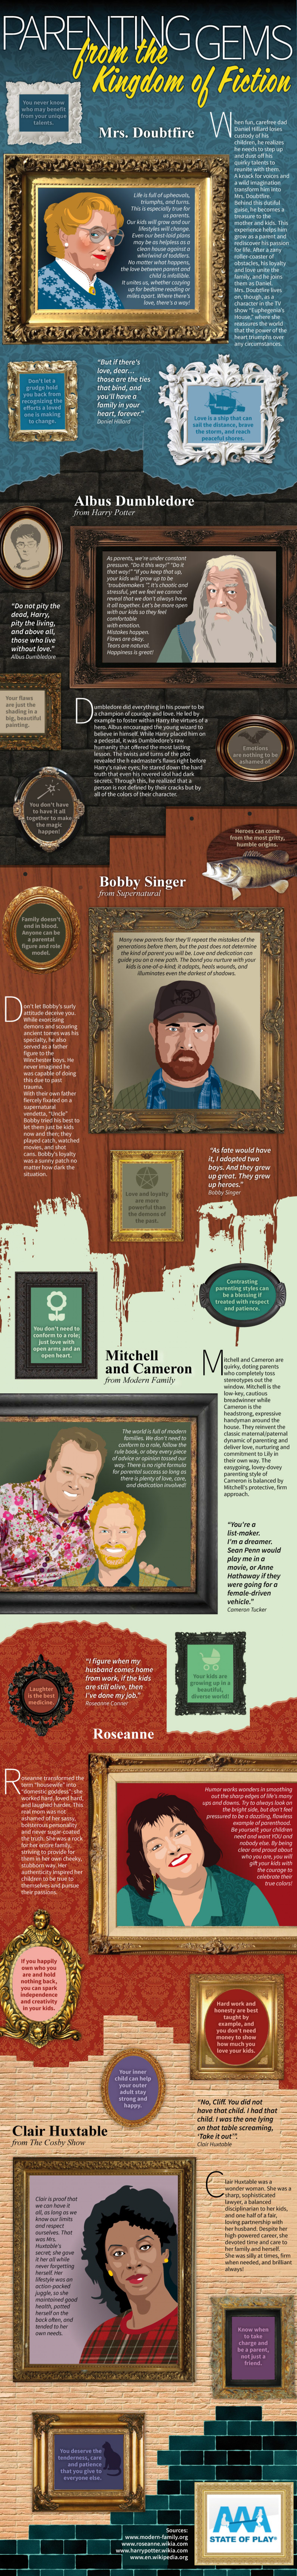 Parenting Gems from the Kingdom of Fiction Infographic